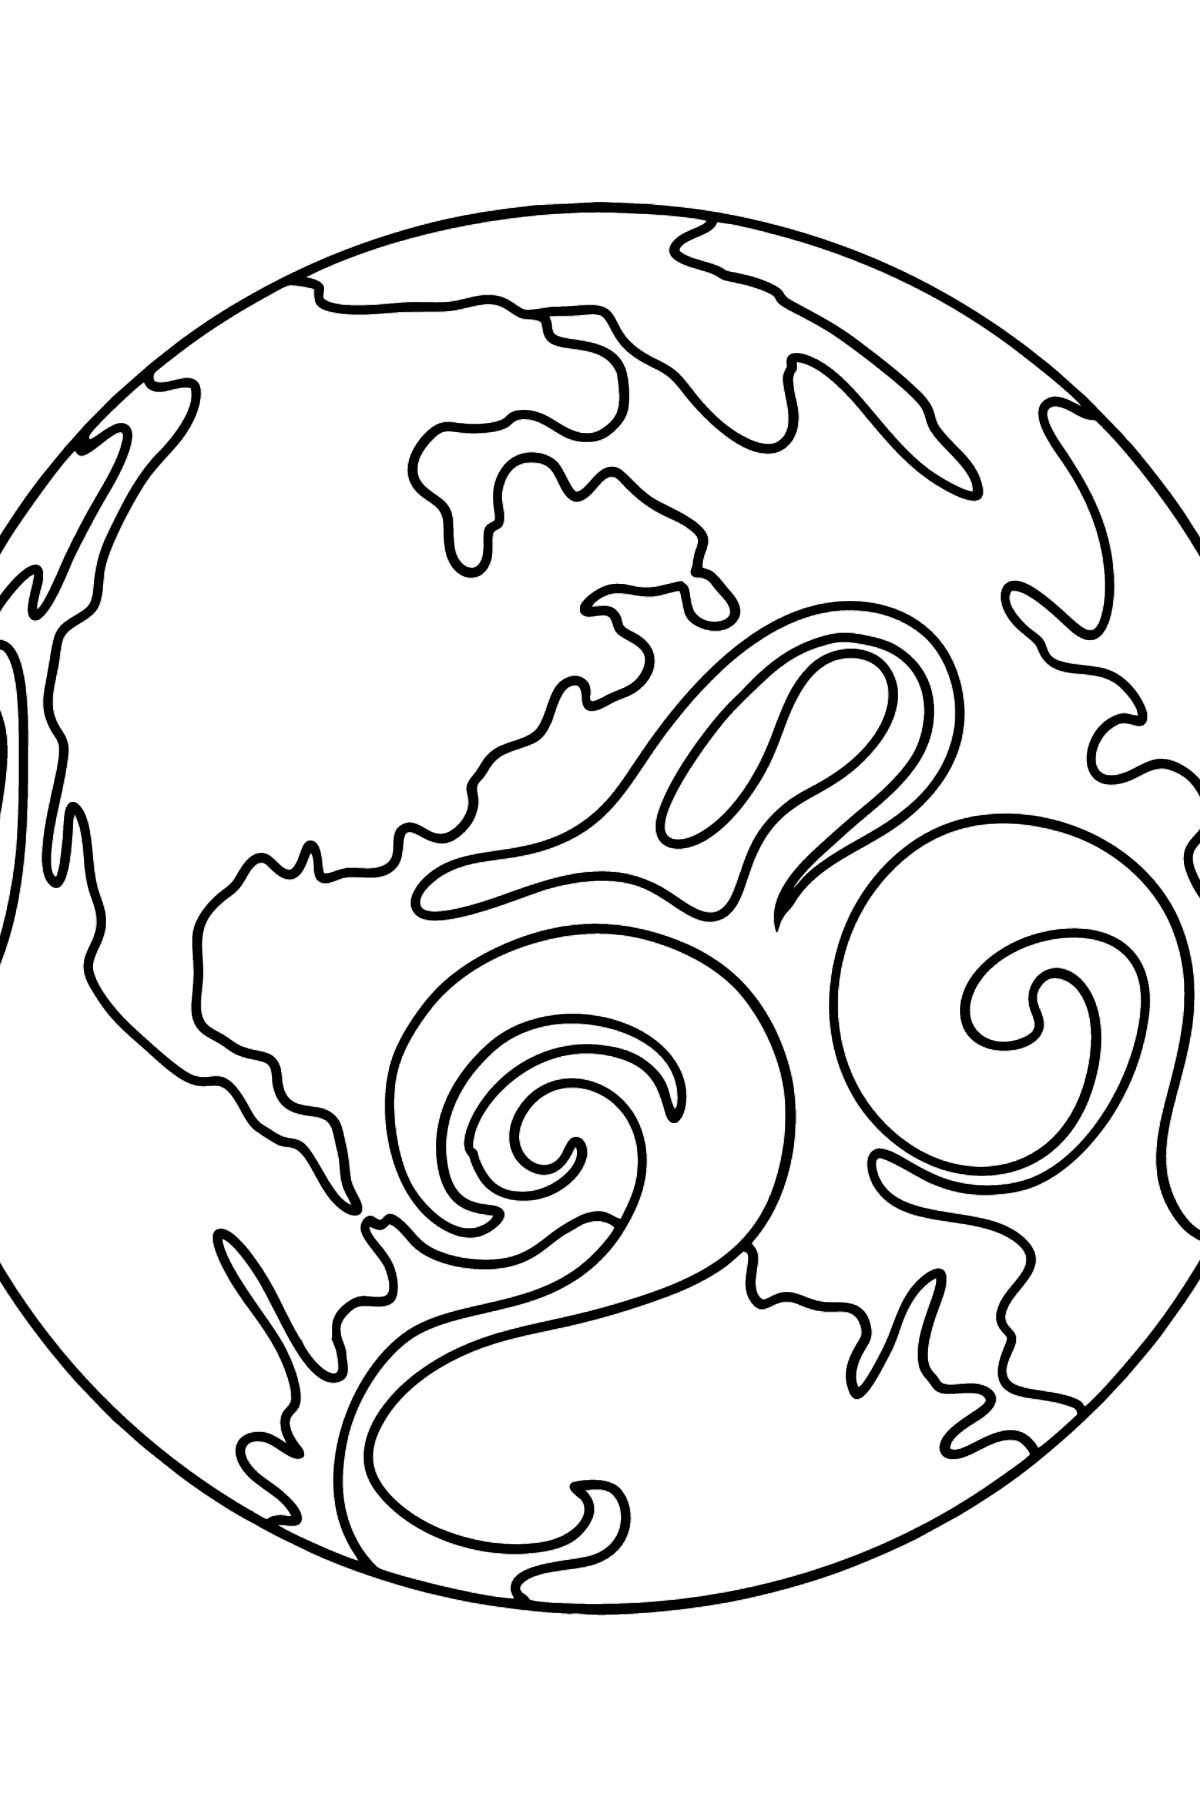 Planet Earth coloring page - Coloring Pages for Kids